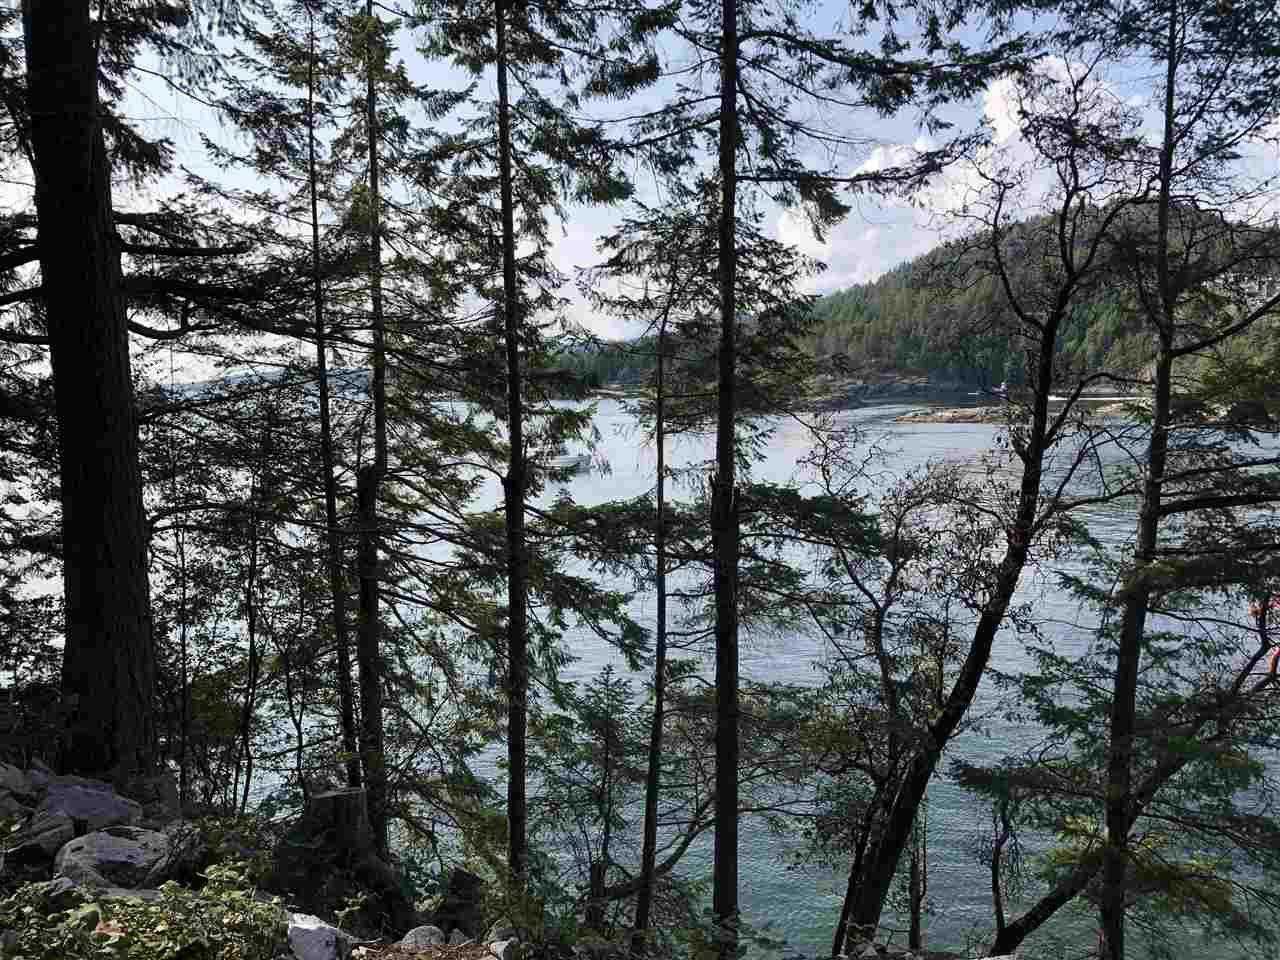 """Photo 11: Photos: 4147 FRANCIS PENINSULA Road in Madeira Park: Pender Harbour Egmont Land for sale in """"BEAVER ISLAND"""" (Sunshine Coast)  : MLS®# R2393294"""